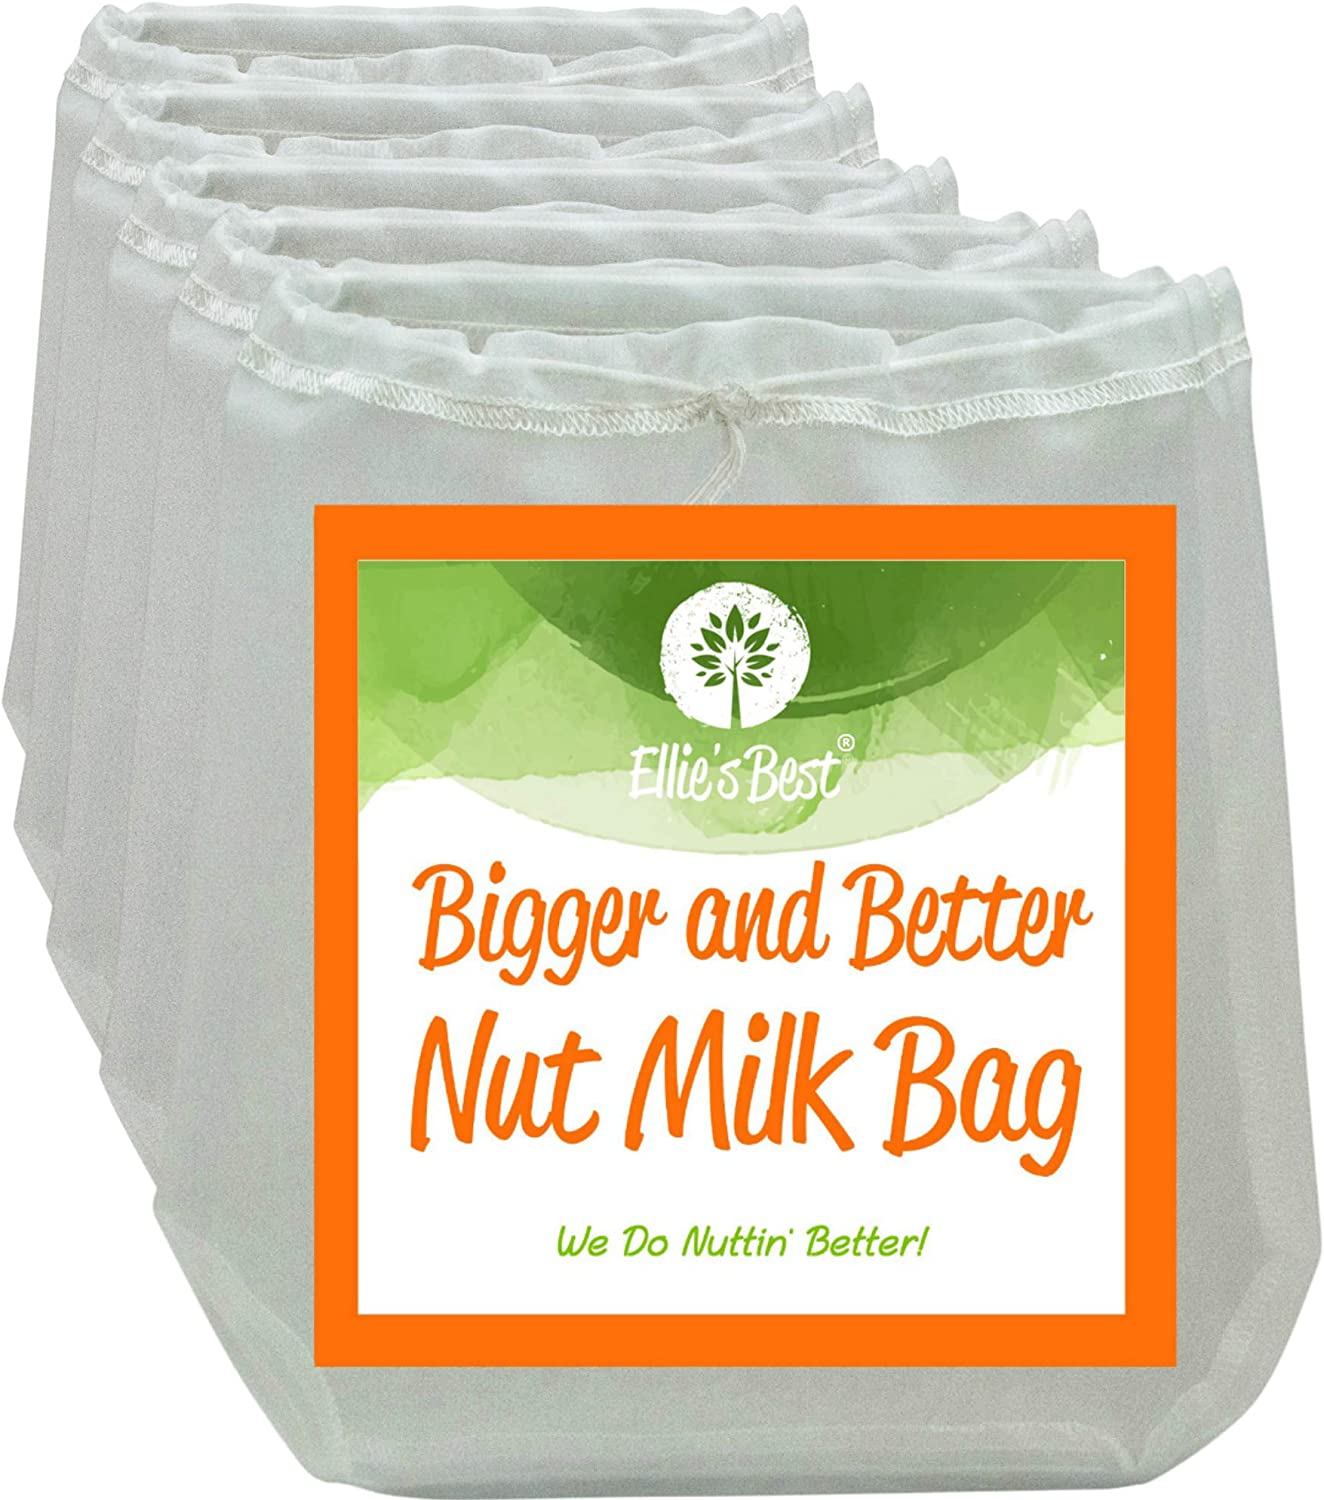 PRO QUALITY NUT MILK BAGS - 5 Commercial Grade 12 X12  Reusable Almond Milk Bag & All Purpose Food Strainer - Fine Mesh Nylon Cheesecloth & Cold Brew Coffee Filter - Free Recipes & Videos (5 Pak)